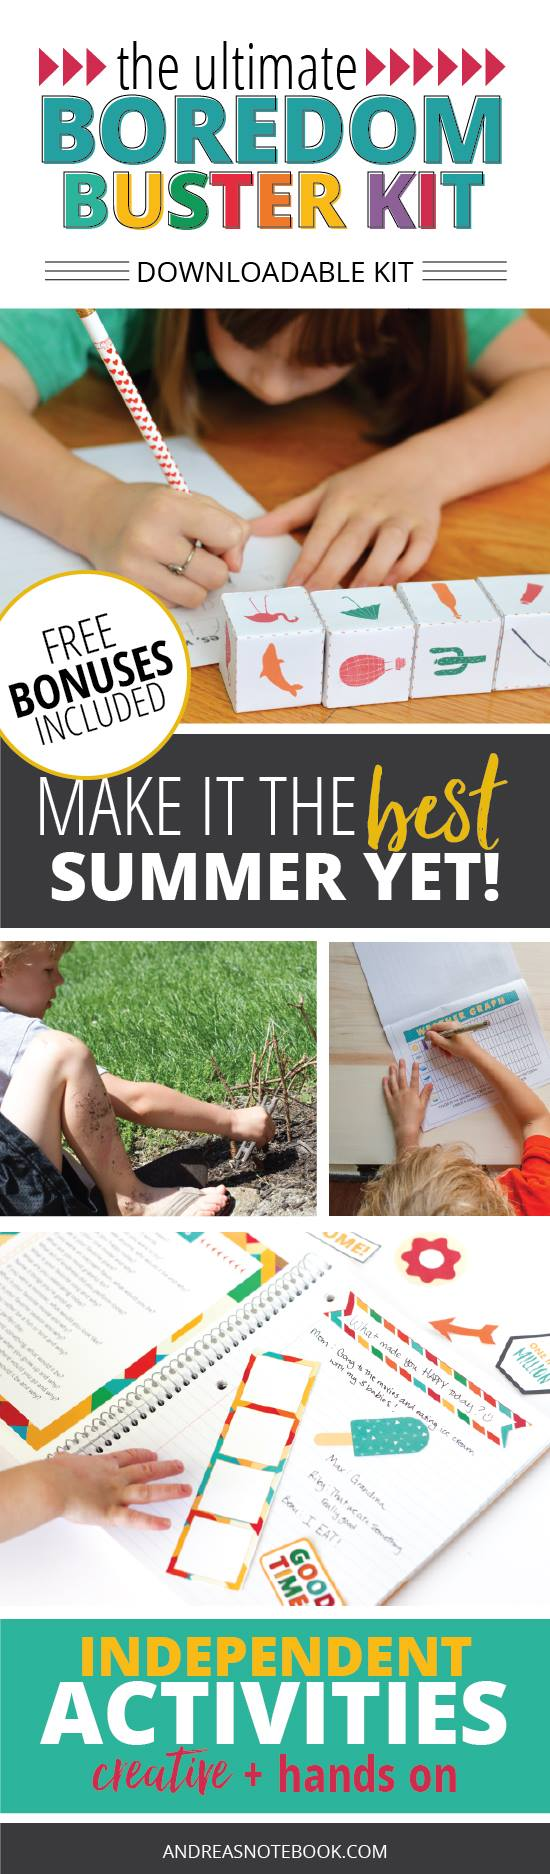 Download and print EVERYTHING you need to keep kids having fun creatively this summer!